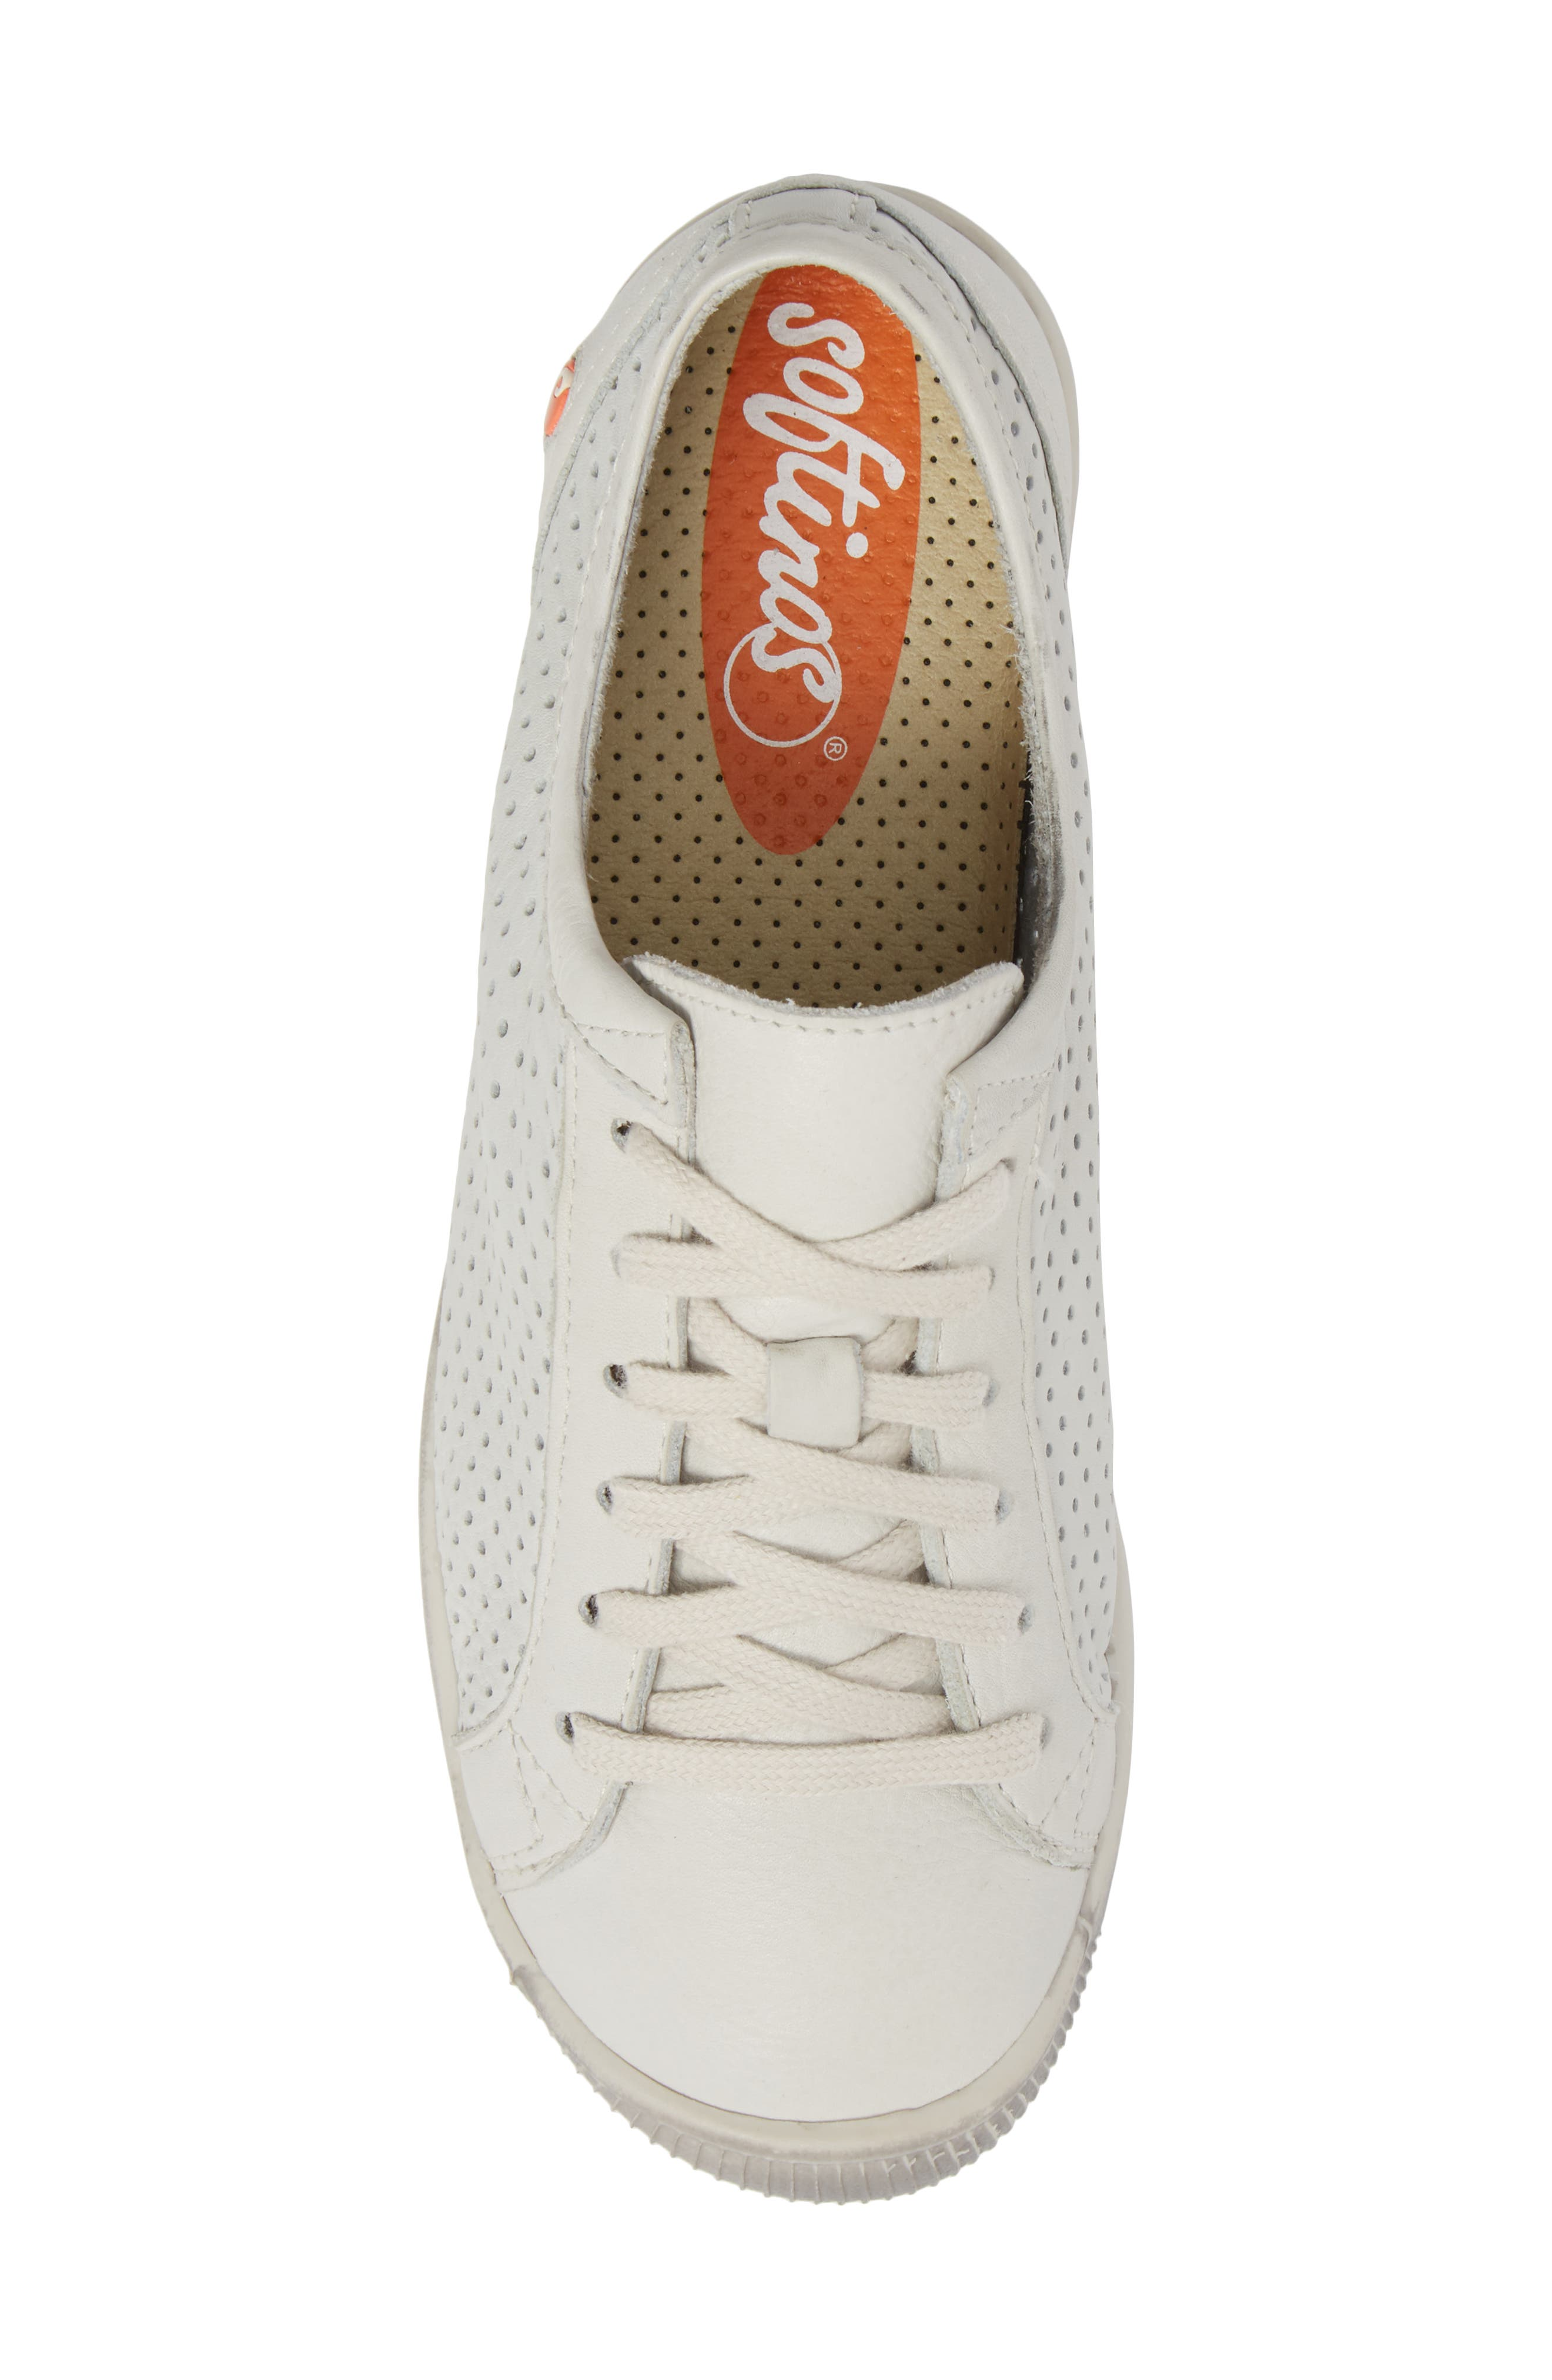 Ica Sneaker,                             Alternate thumbnail 5, color,                             WHITE LEATHER